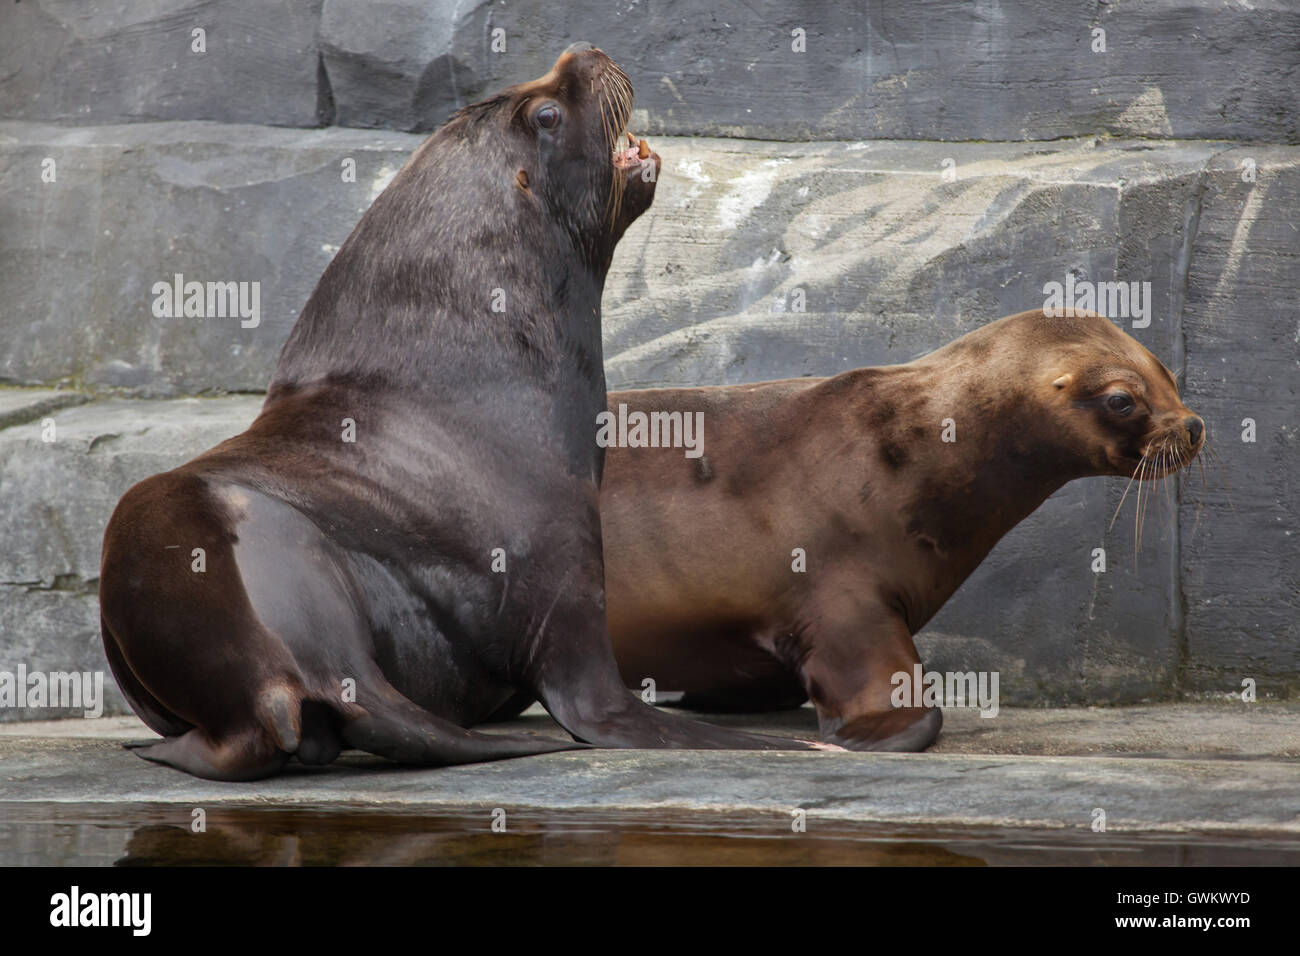 South American sea lions (Otaria flavescens) at Vincennes Zoo in Paris, France. Stock Photo